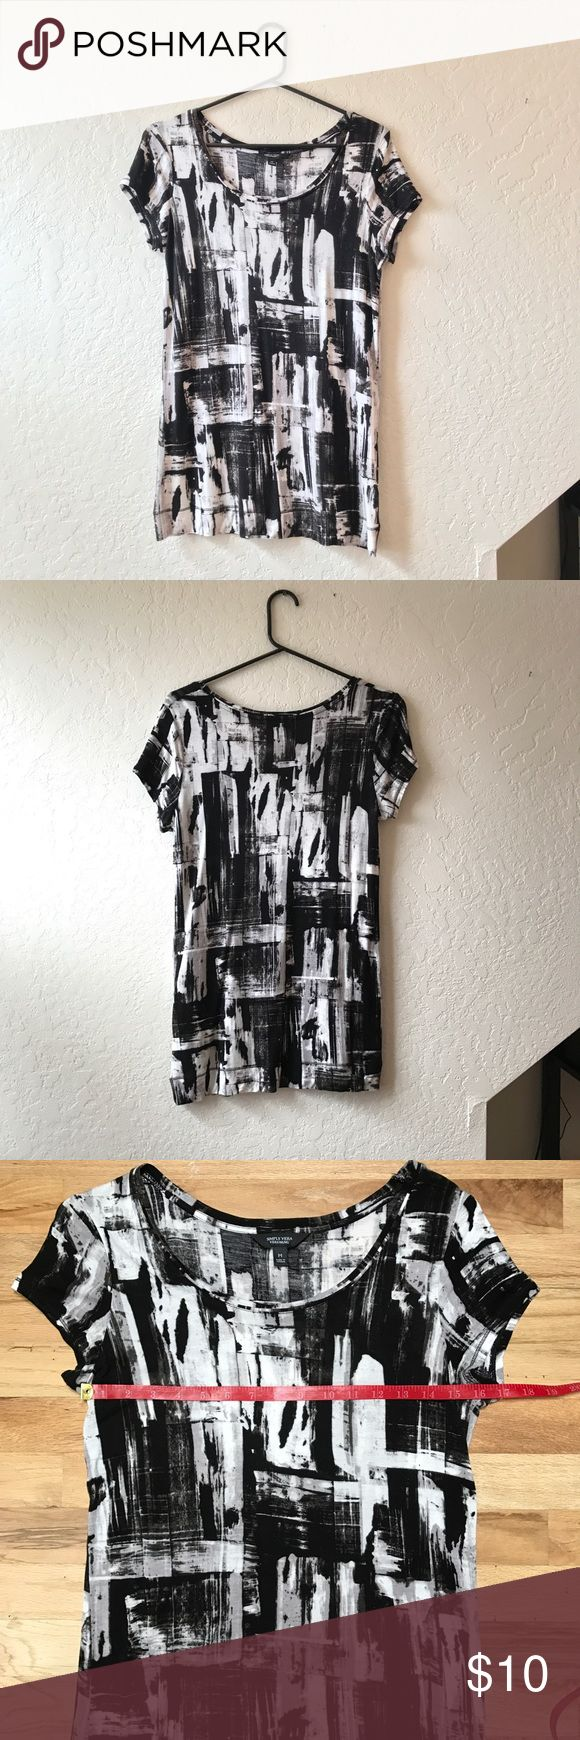 Vera Wang Black and White Tee Simply Vera Wang black and white abstract tee. Excellent used condition. 100% rayon makes for a comfy, flattering fit with some stretch. Measurements as pictured. Vera Wang Tops Tees - Short Sleeve